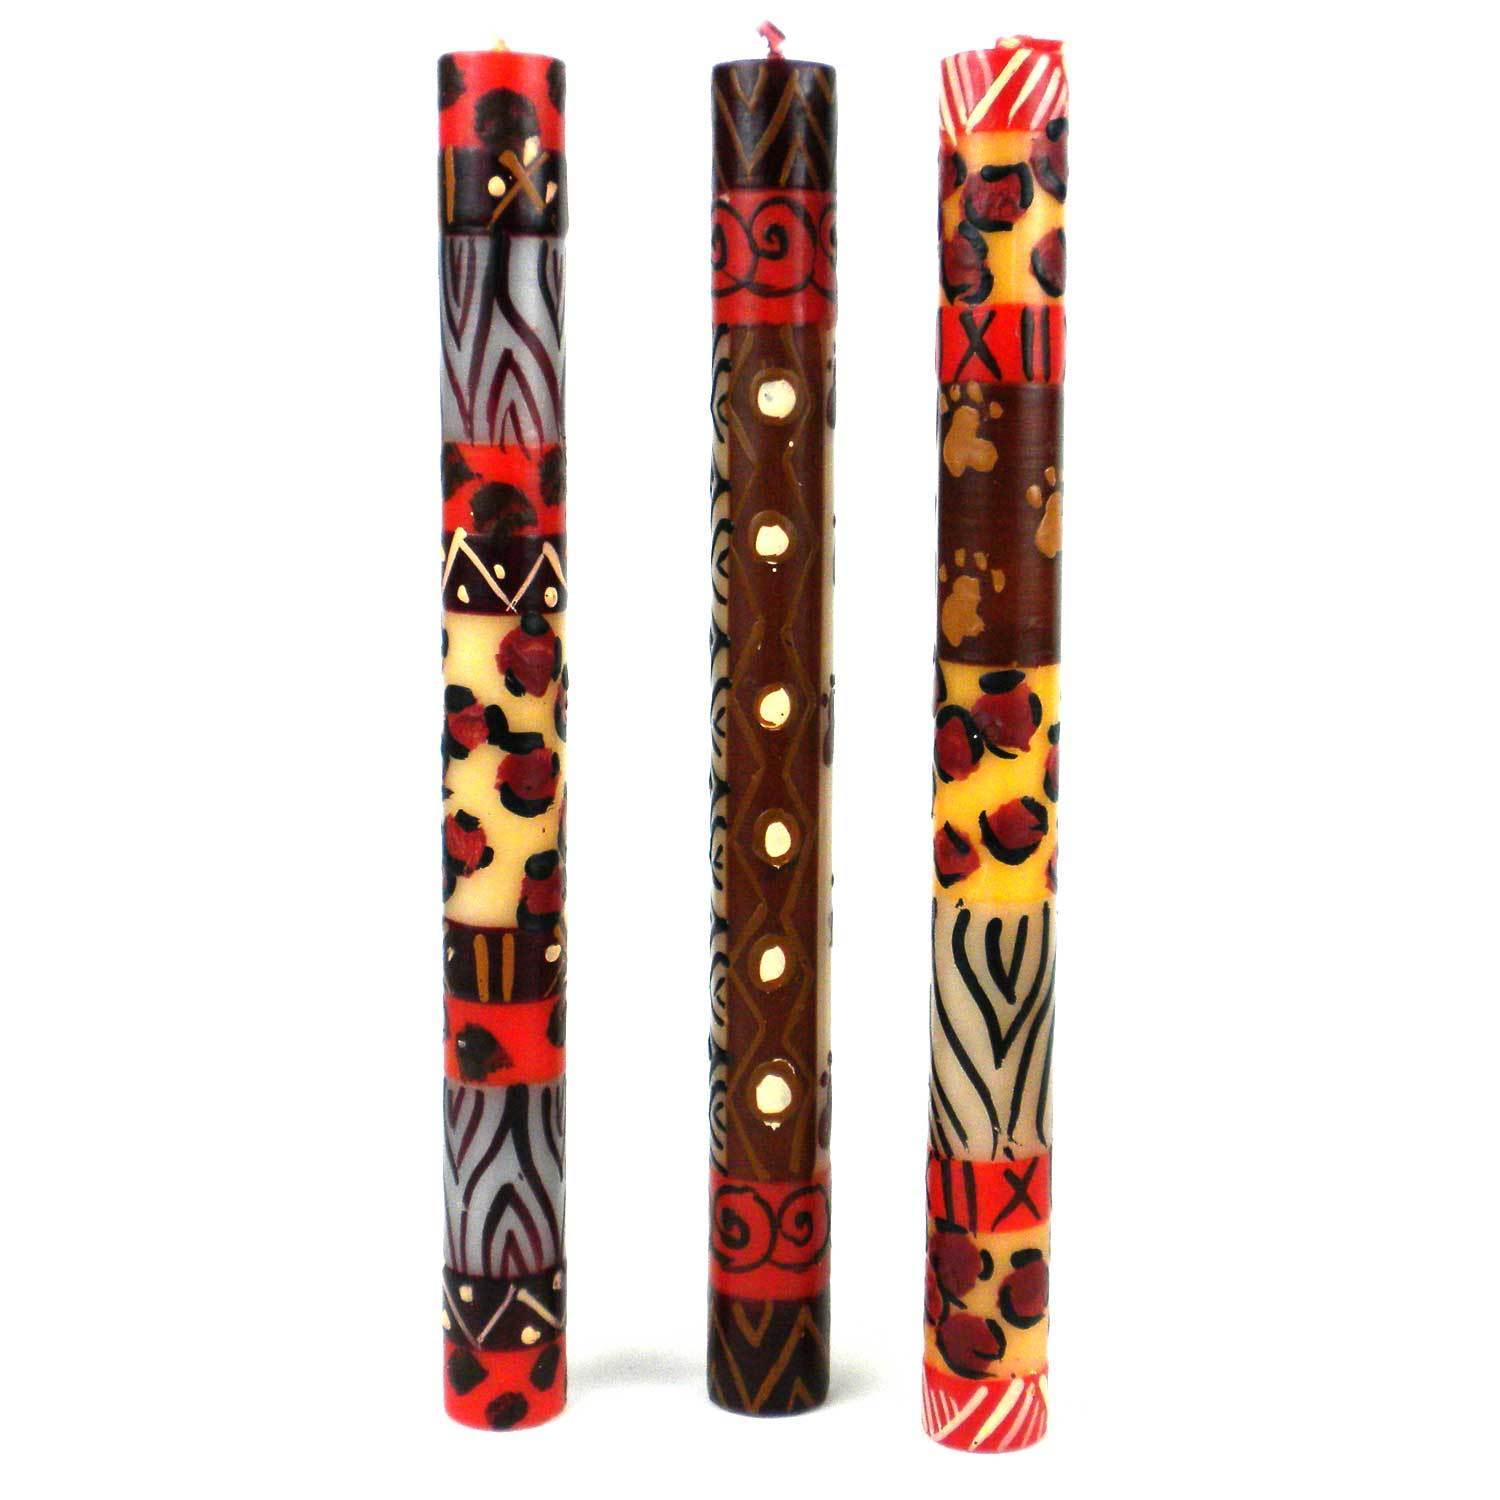 Global Crafts Set of Three Boxed Hand-painted Taper Candles with Uzimai Design